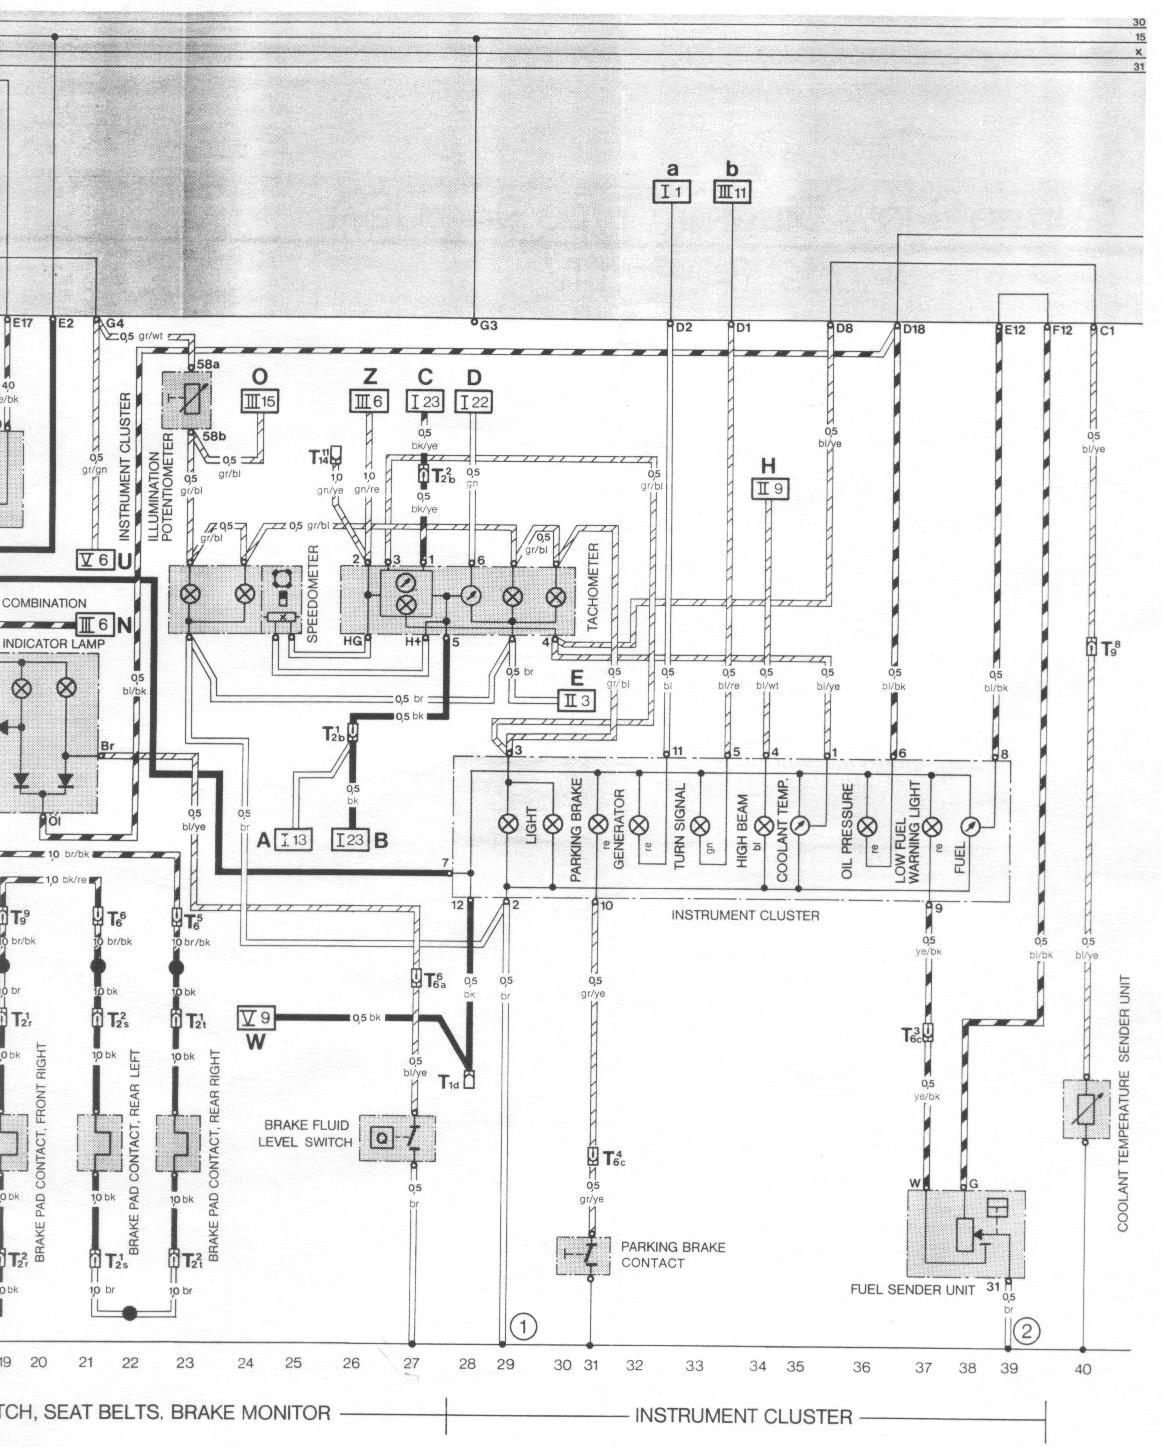 944_84_4_2 porsche 944 wiring diagram pdf 1989 porshce 930 engine wiring 1986 porsche 944 fuse box diagram at crackthecode.co